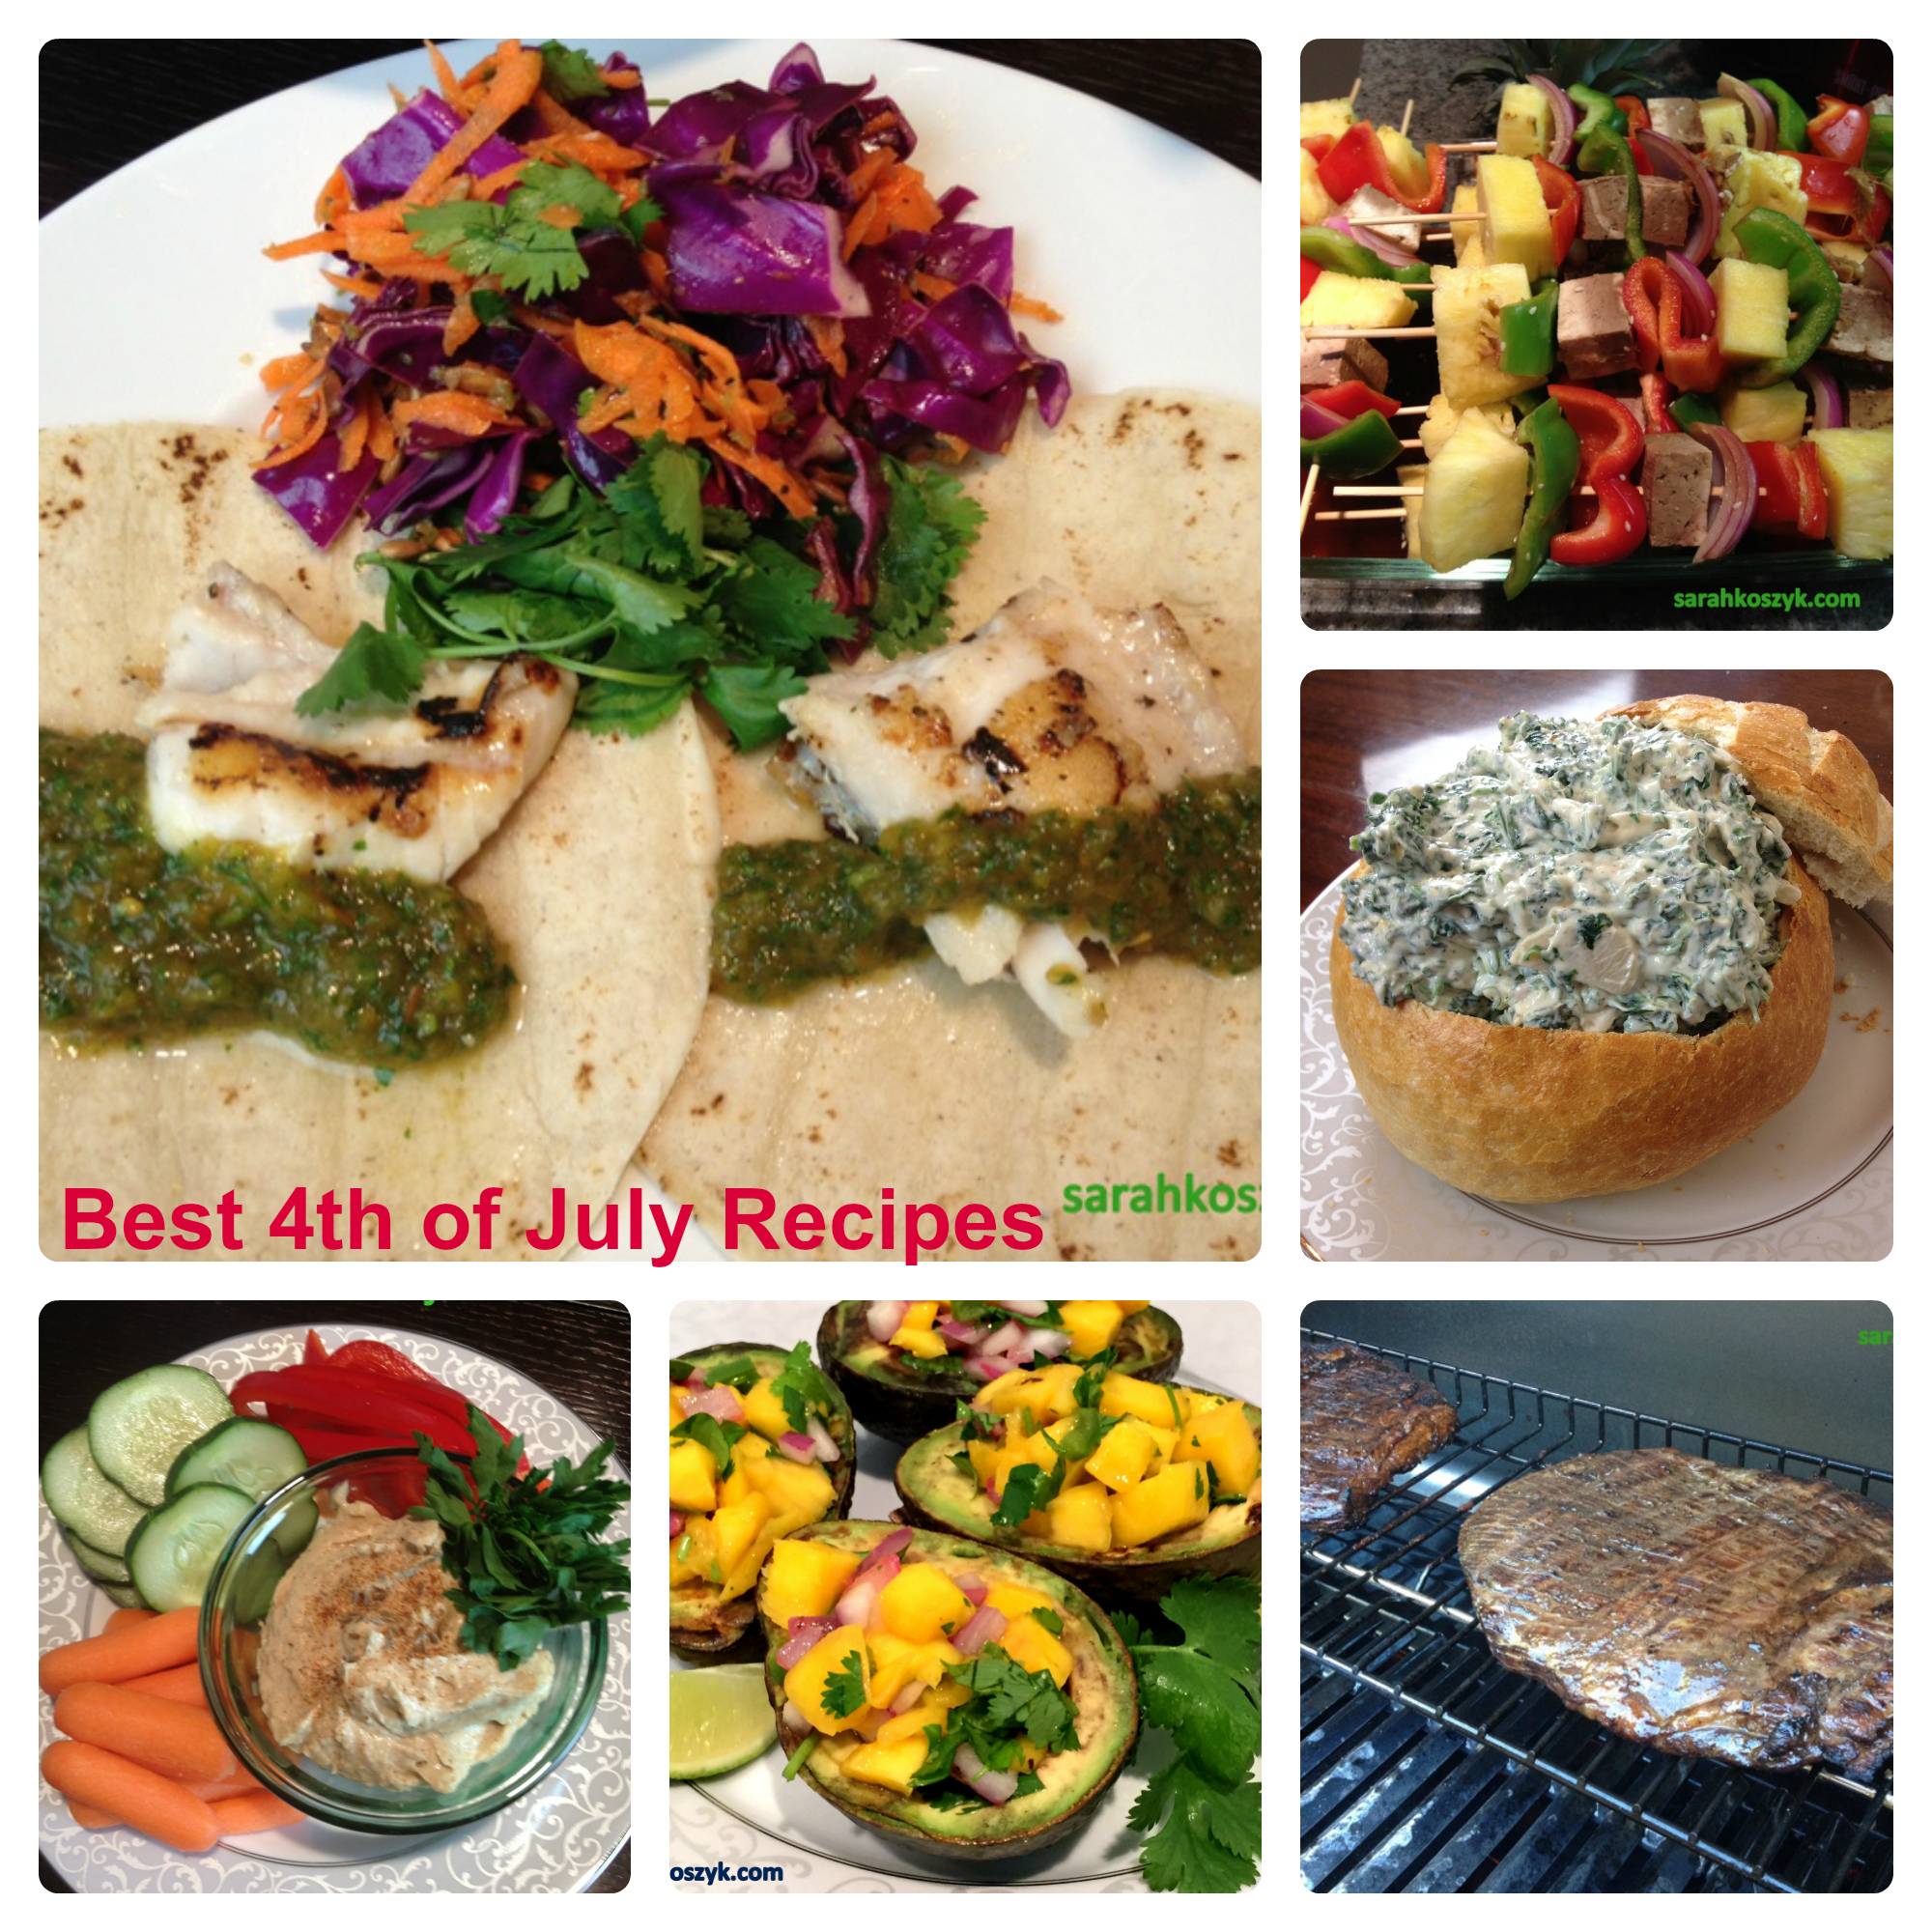 10 Fourth of July Recipes You Won't Want To Miss